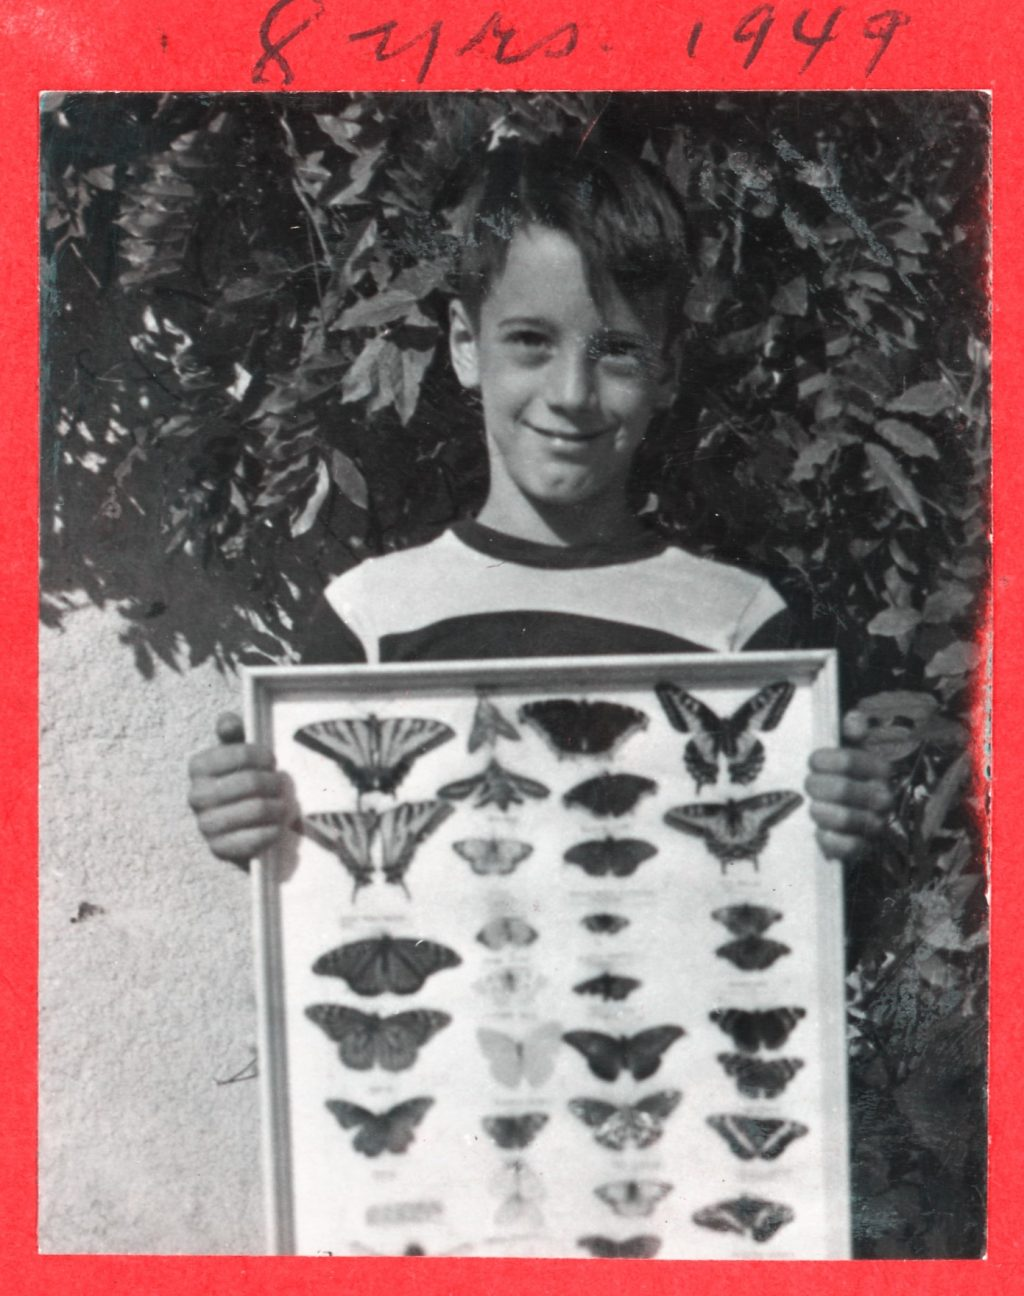 Emmel displays preserved butterflies in a frame